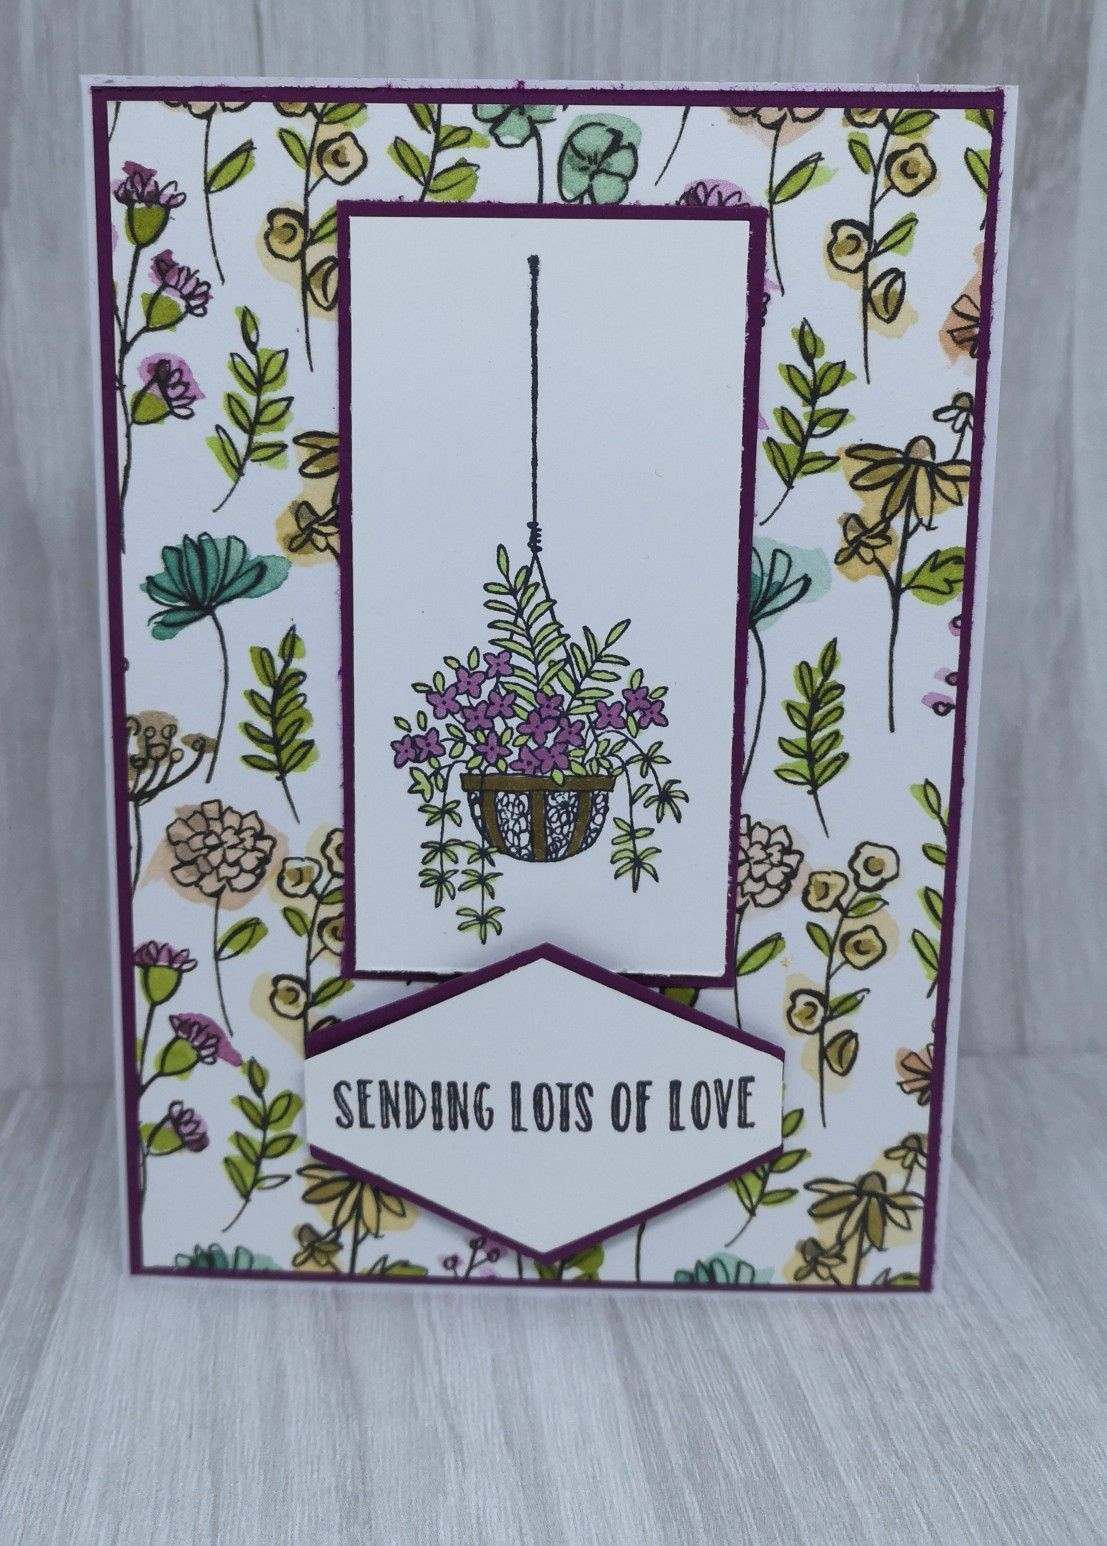 - with Stampin'Up For this tutorial I'm using Share What You Love DSP ans cardstock together with the Hanging Gardens stamp set by Stampin' Up. Ideal for beginnersFor this tutorial I'm using Share What You Love DSP ans cardstock together with the Hanging Gardens stamp set by Stampin' Up. Ideal for beginnersmaking - with Stampin...